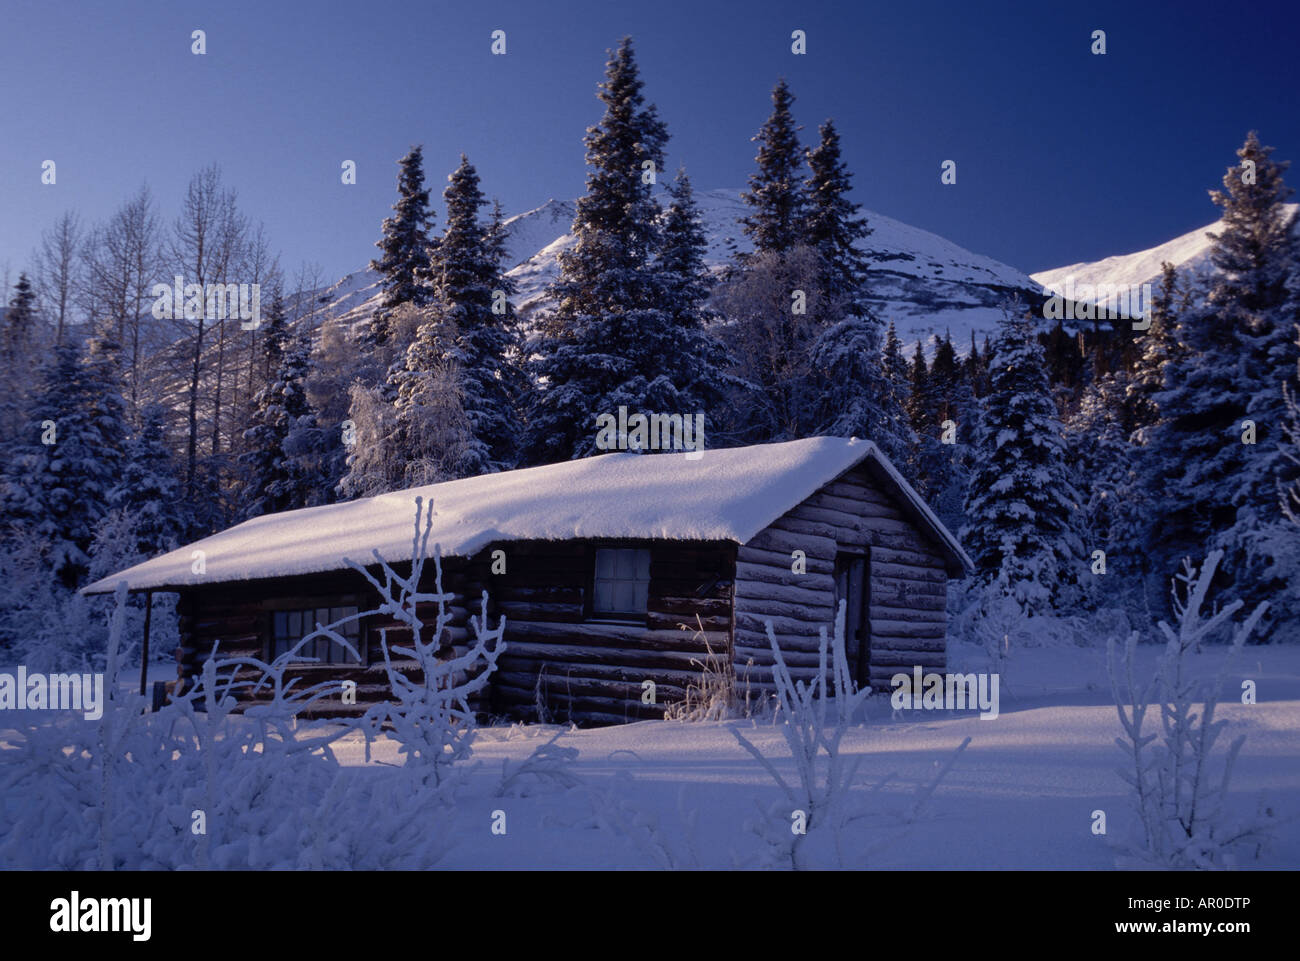 is means summit within vacations close cabins bear den blog which the very village featured of home four totally big timber super blocks and lake drive snow wolf to also it s short a walkable